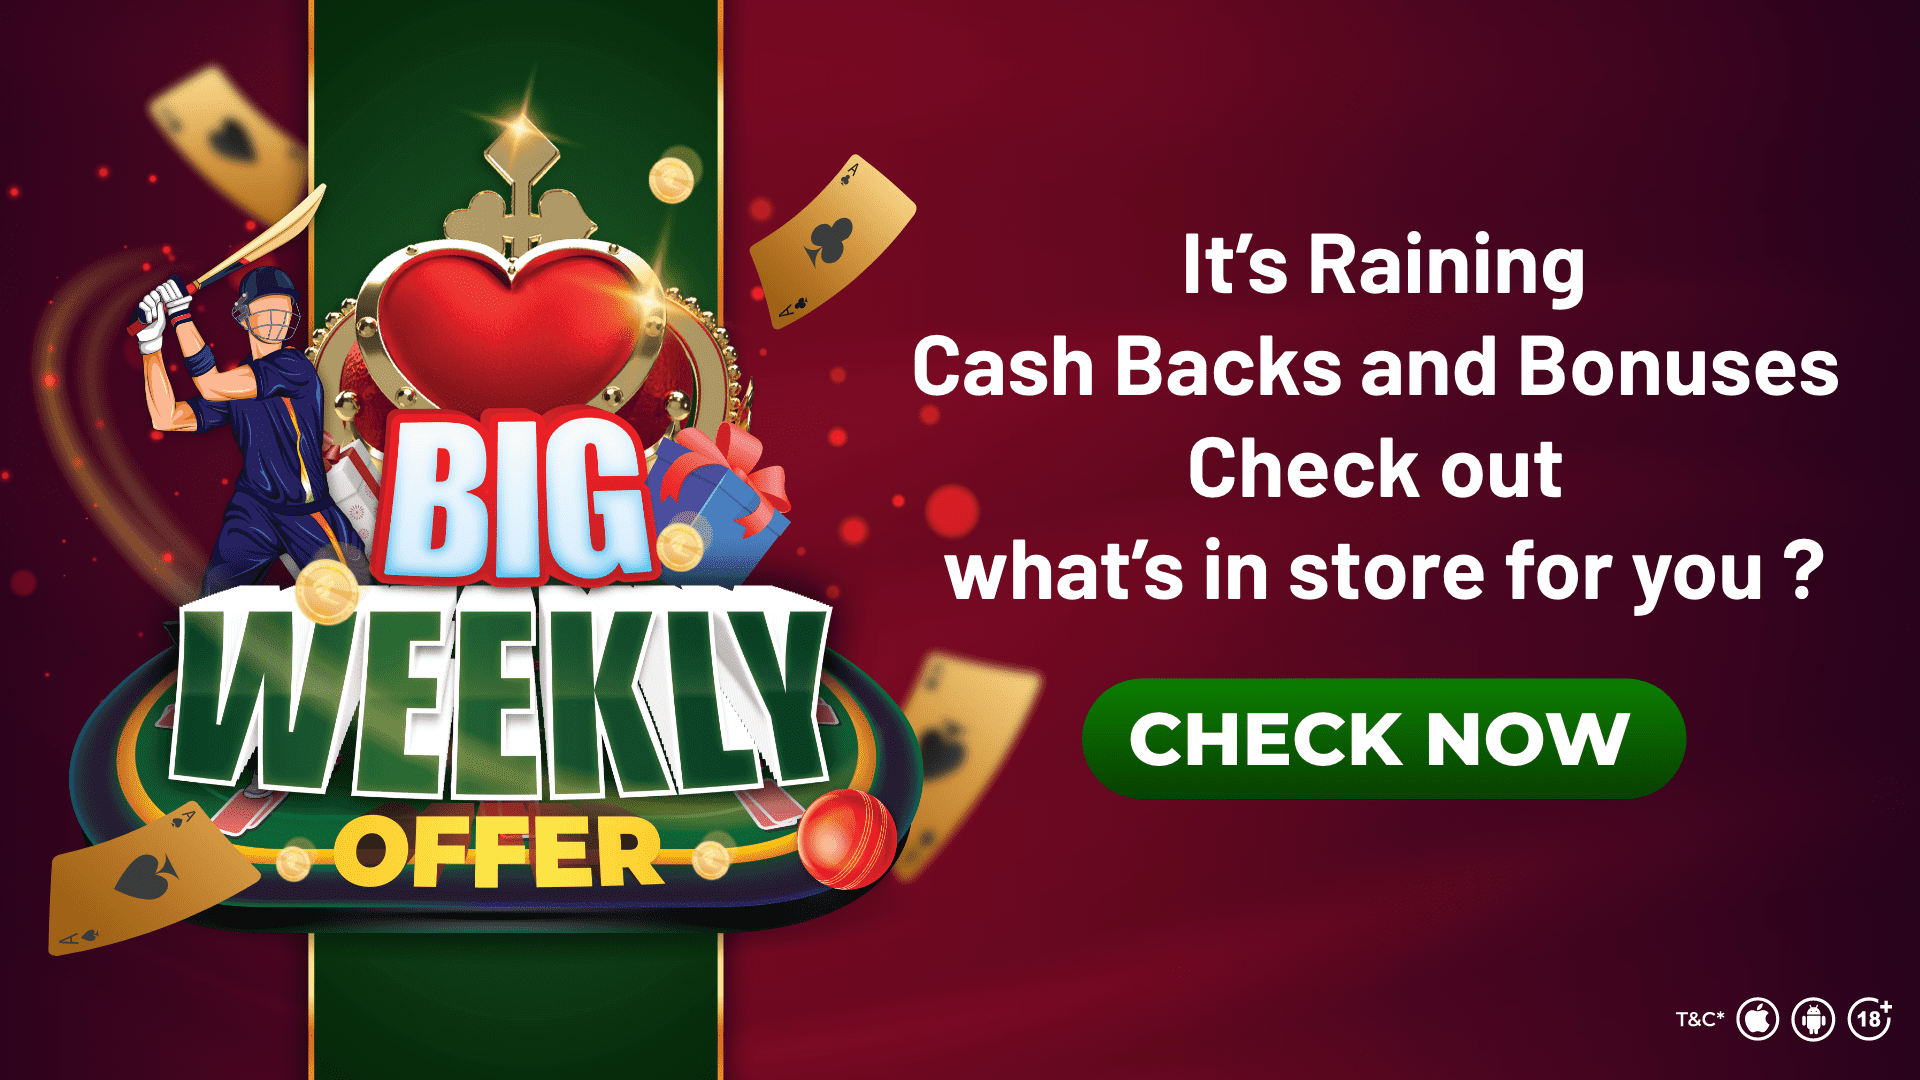 Big Weekly Offer at Classic Rummy